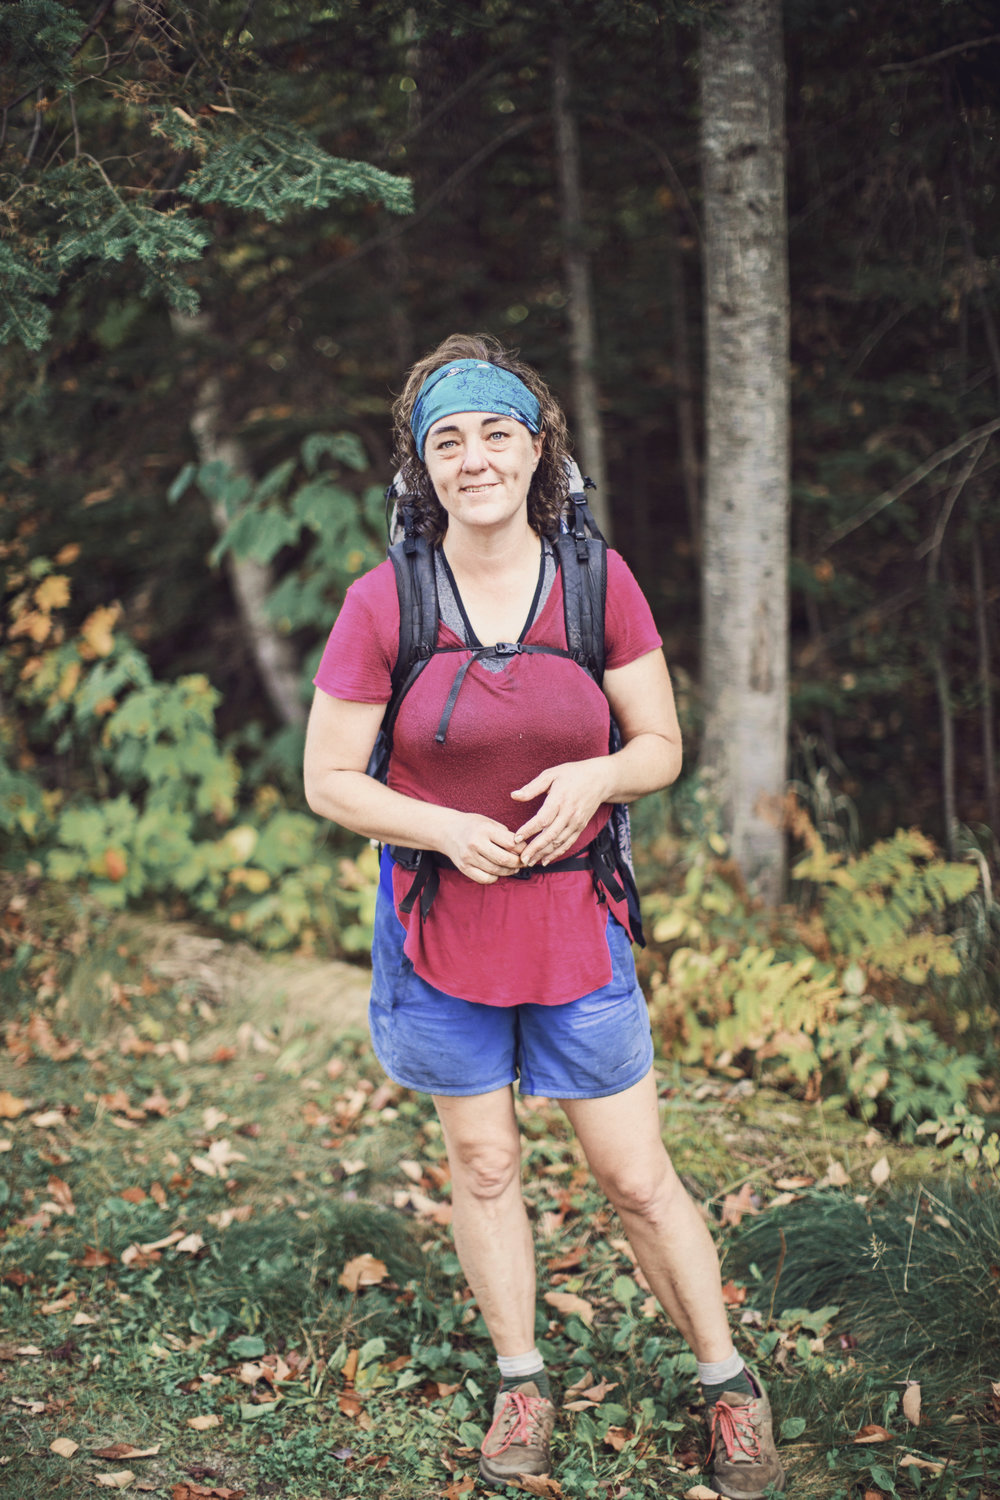 """I heard about the trail probably 20 years ago and I've wanted to hike the trail since I heard about it"" says Wendy. ""The reason why I wanted to do it is because I knew it would be difficult. It's always in those difficult things you do that you learn the most about yourself, the most about life lessons. I just wondered what I could learn from this trail. I sat on the side of the trail in Maine, talking to Wendy when she only had 200 more miles to go. She continues ""I think somewhere along the way I learned those lessons and I learned to pour myself into it and it became even more important that I finish to show people that they can do things that they didn't think they could do."" I asked Wendy if she had any doubters. ""Absolutely"" she said, ""especially myself. I didn't even think I would make it out of Georgia."" Wendy quit her job to free up time to hike the trail. When she finishes she plans to open a food truck!"